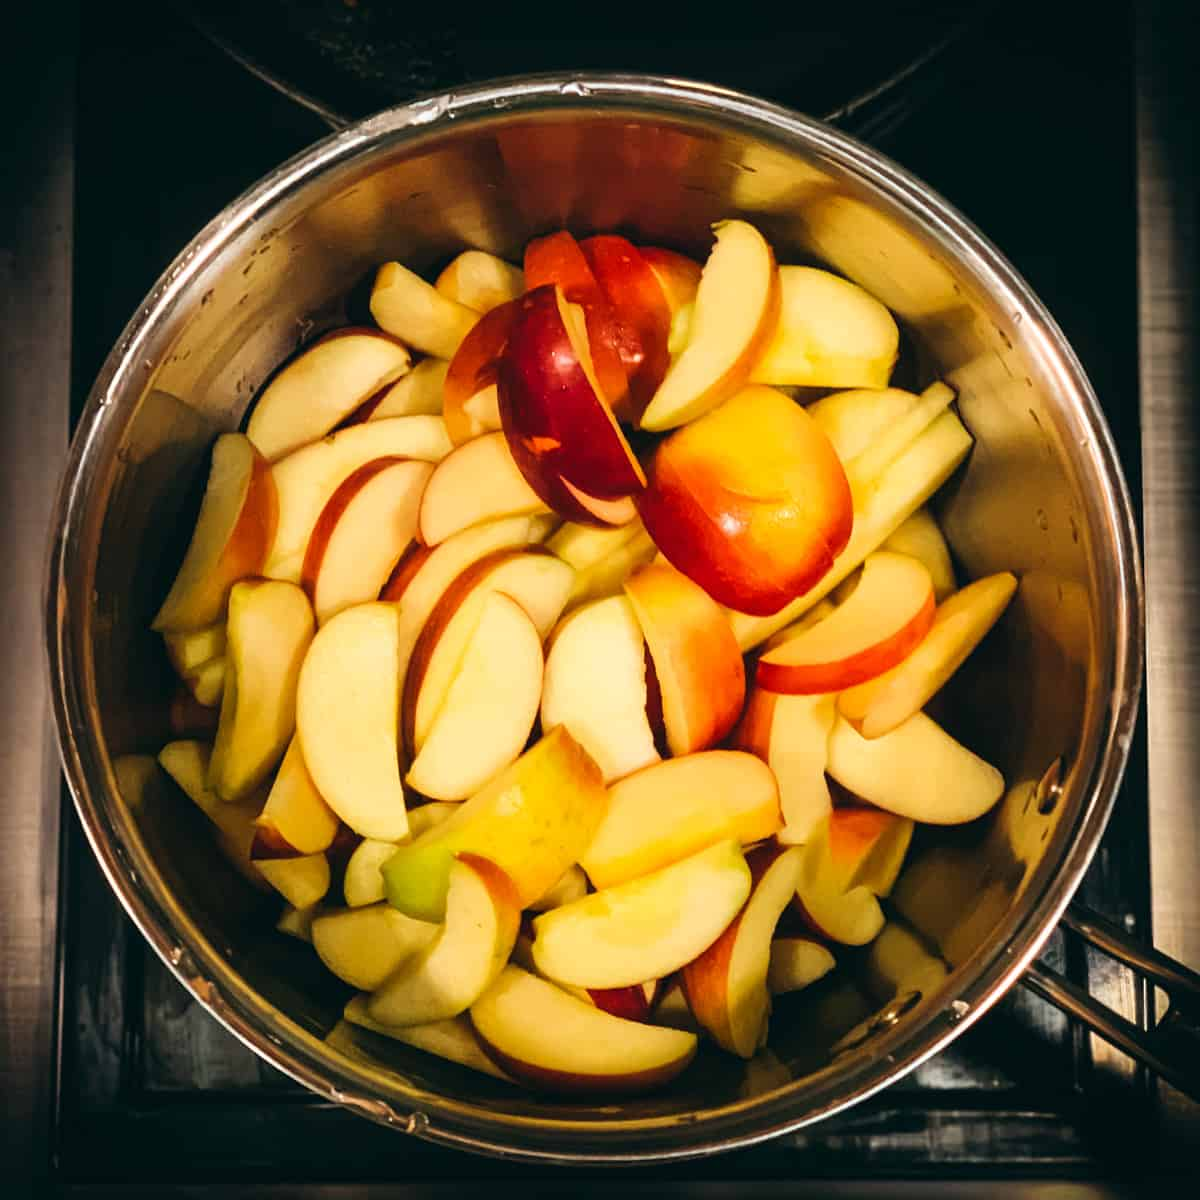 sliced apples in a pot